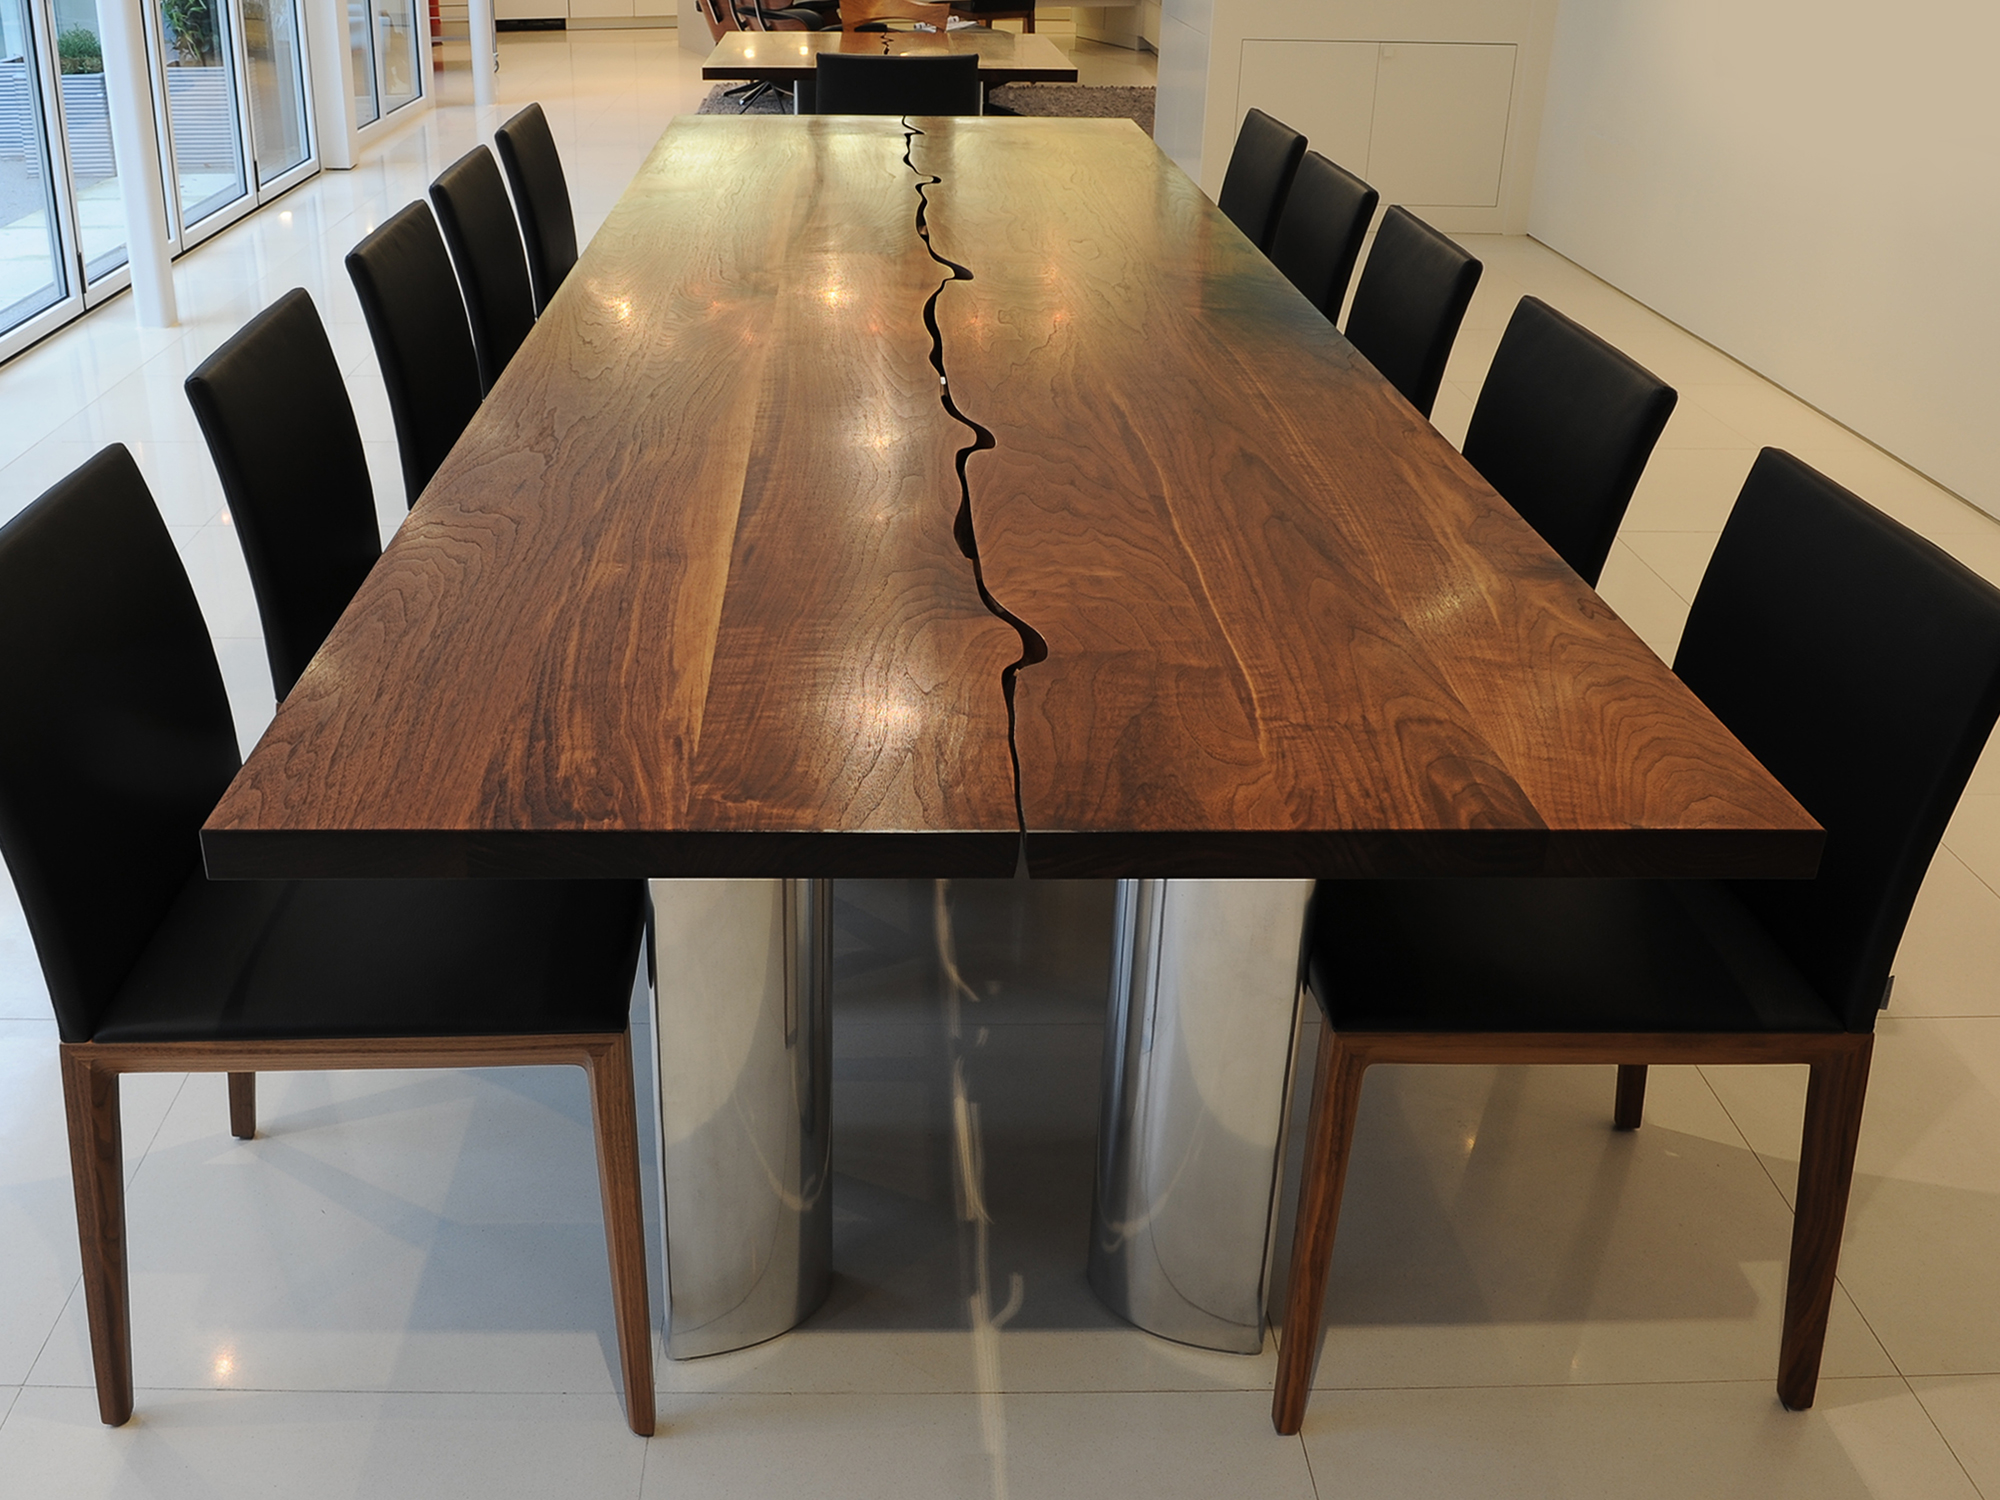 Bench Dining Tables: Bespoke Dining Or Conference Table In Solid Walnut